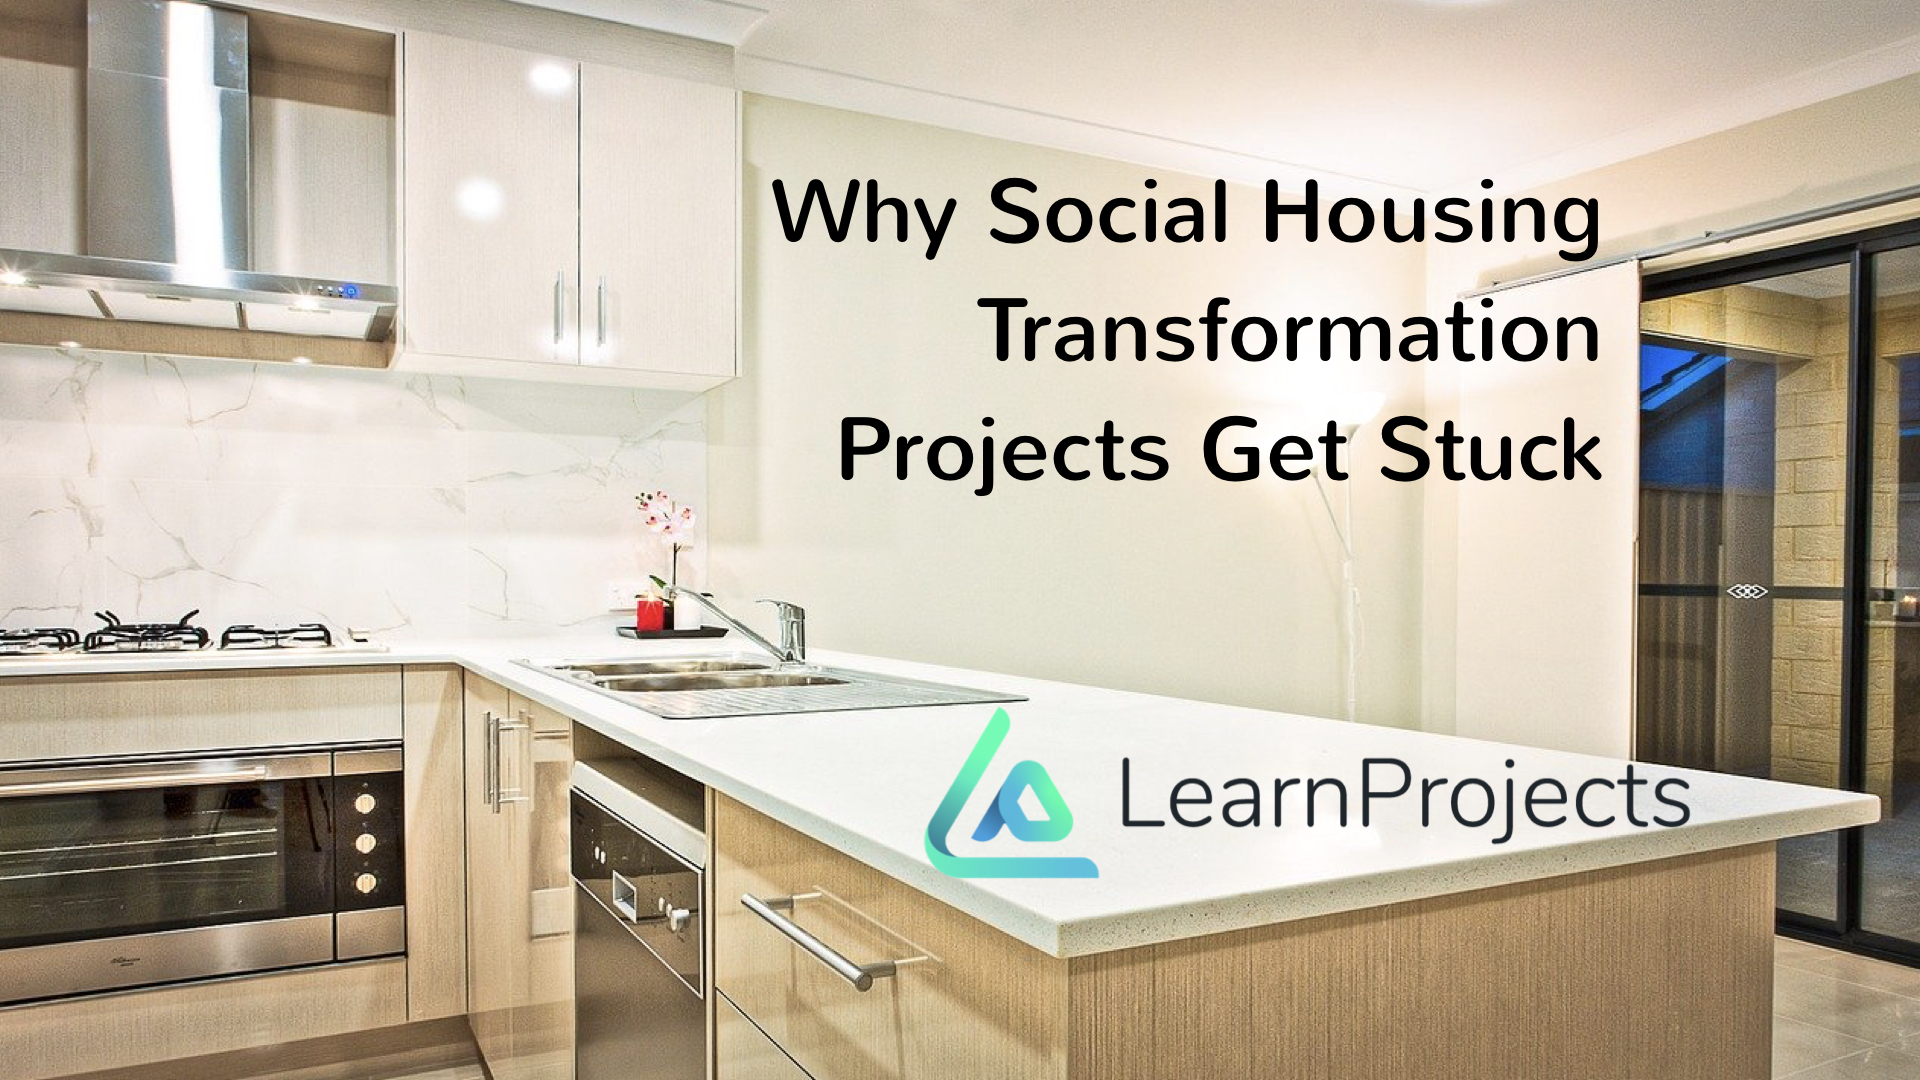 Why social housing transformation projects get stuck